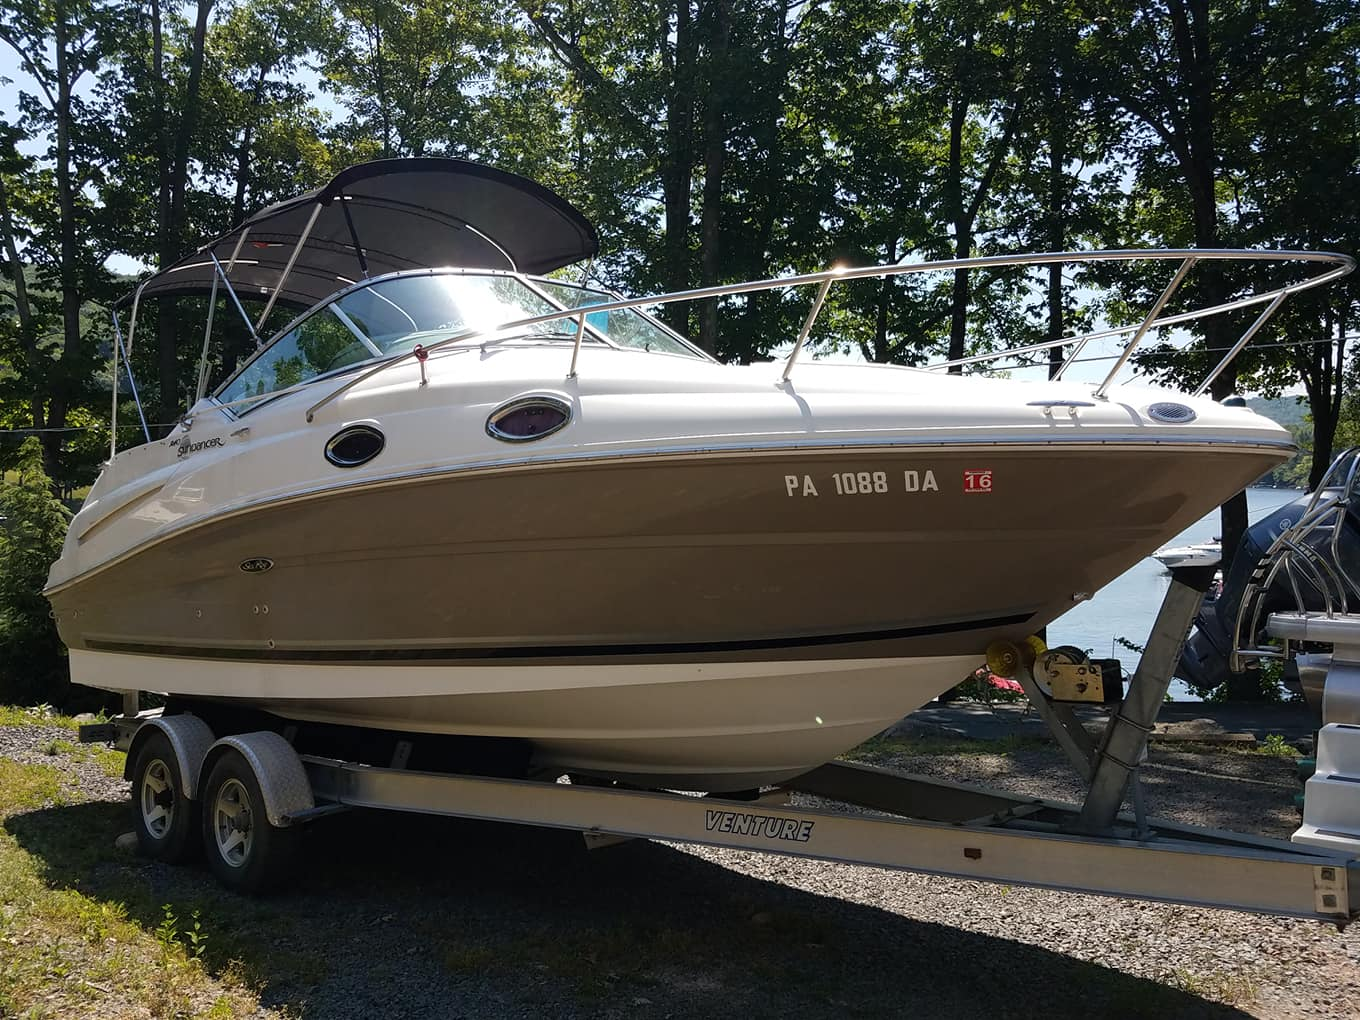 Preowned Boats For Sale Wallenpaupack Northeast Pa Yamaha Jet Boat Dual Battery Wiring Diagram Butane Stove Top 25 Gal Fresh Water Holding Tank Batteries W Charger Heating A C 12000 Btu Hotwater Heater Pump Out Headvery Clean